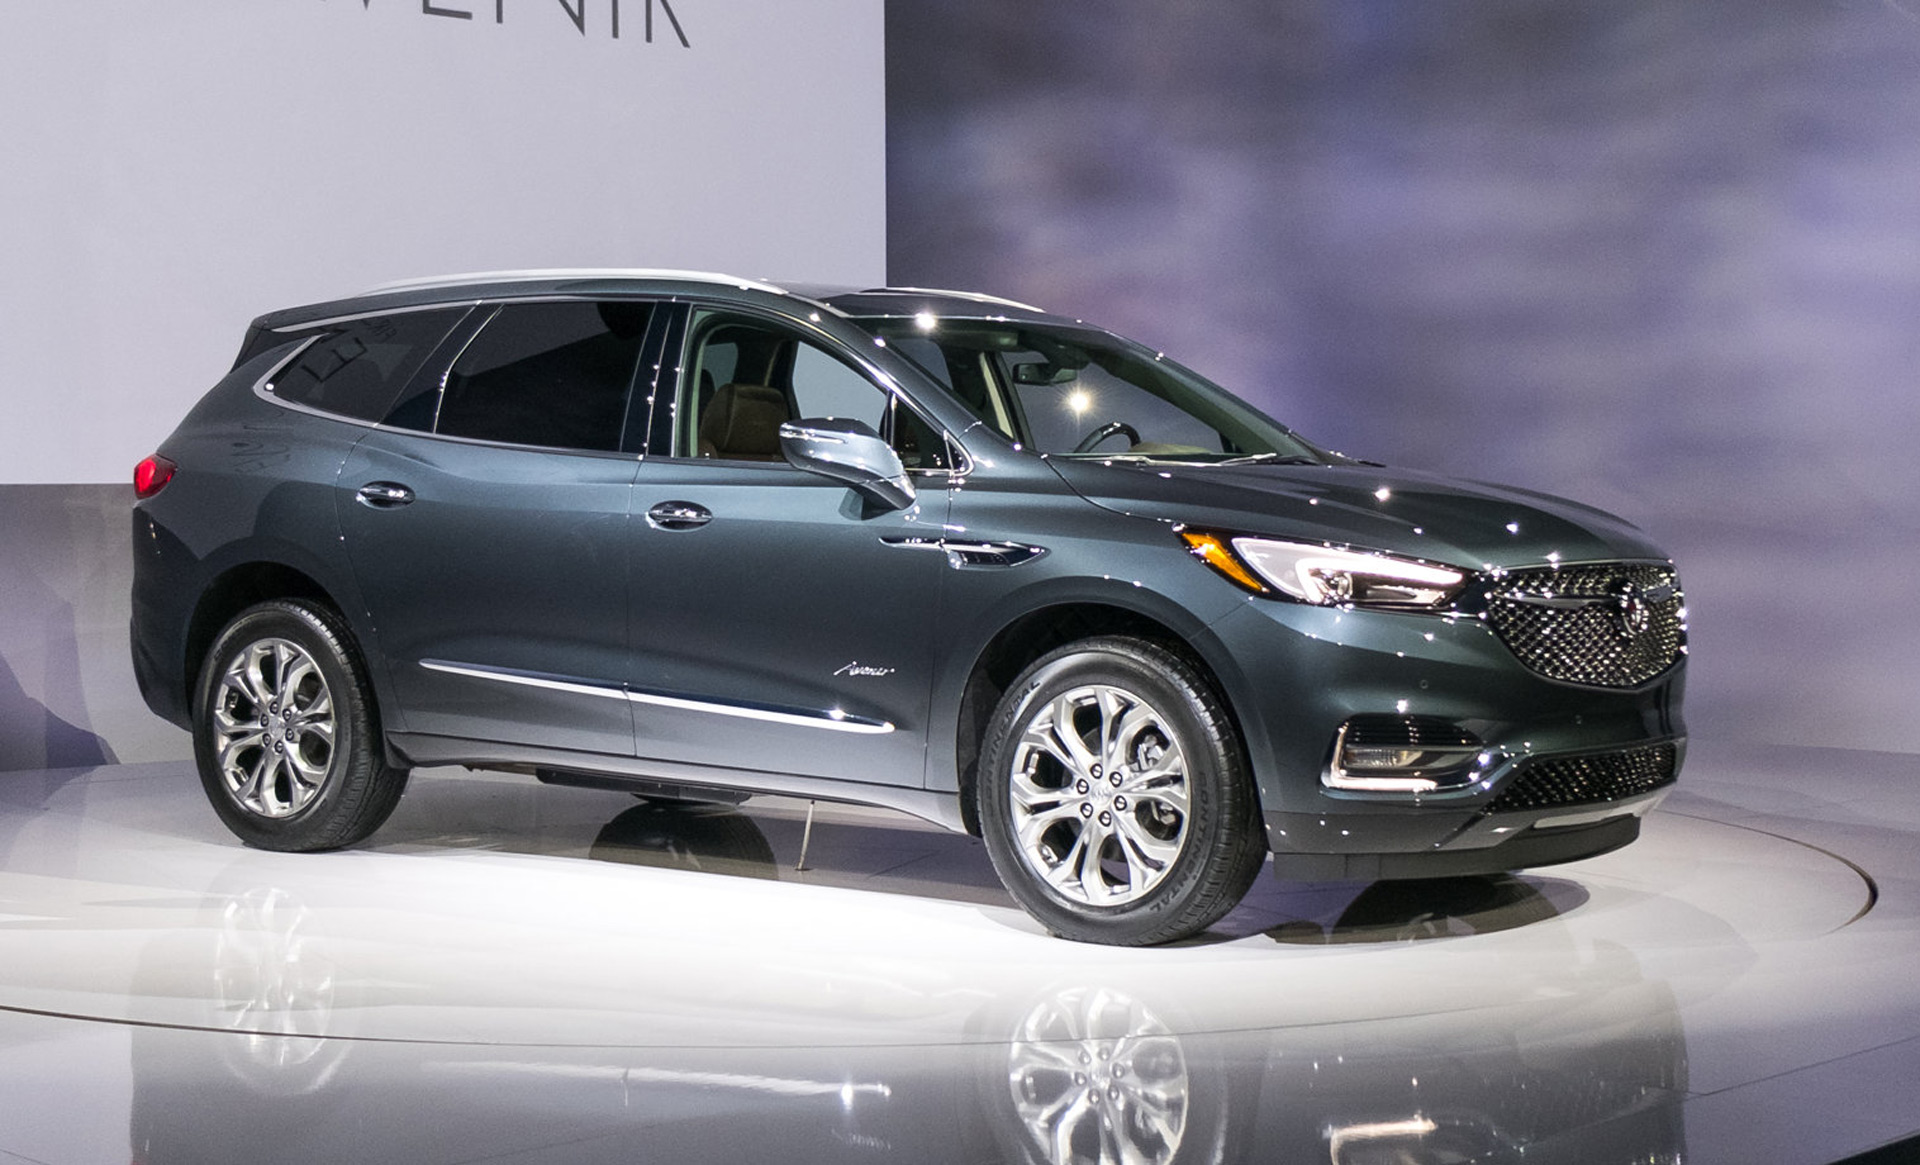 2018 Buick Enclave, 2018 Dodge Demon, 2018 Lincoln ...